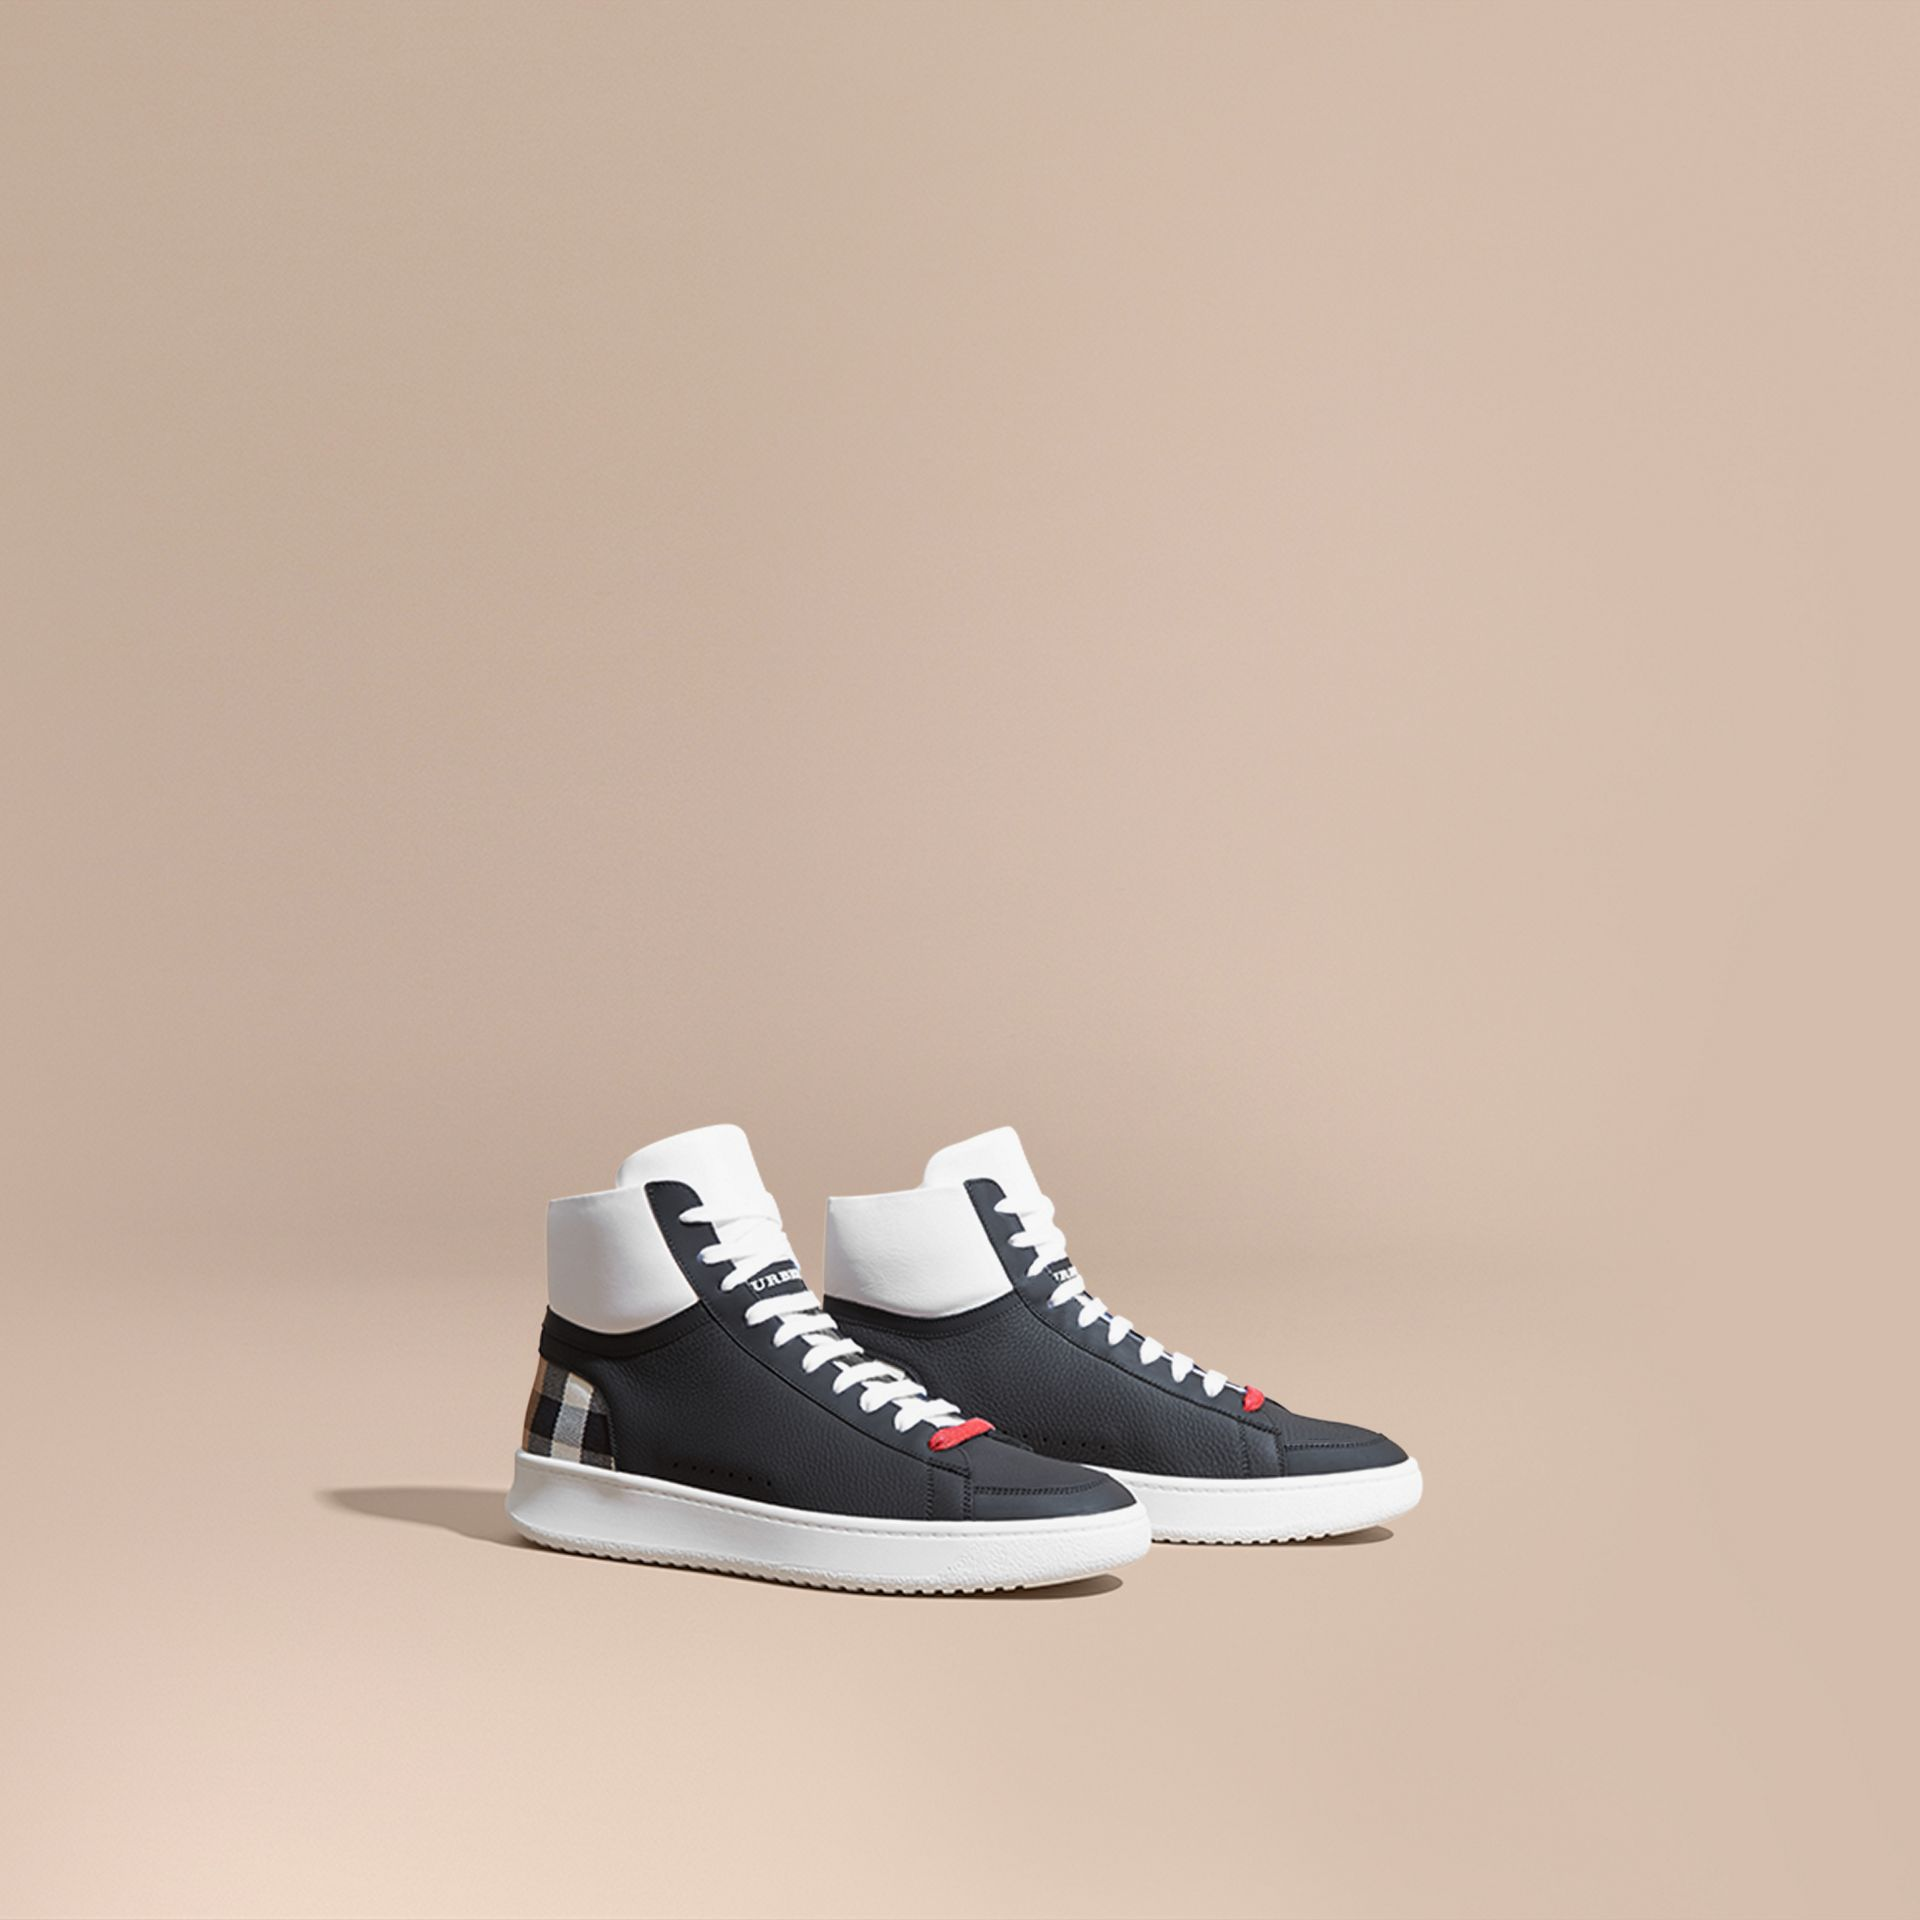 House check/black Check Detail Leather High-top Trainers House Check/black - gallery image 1